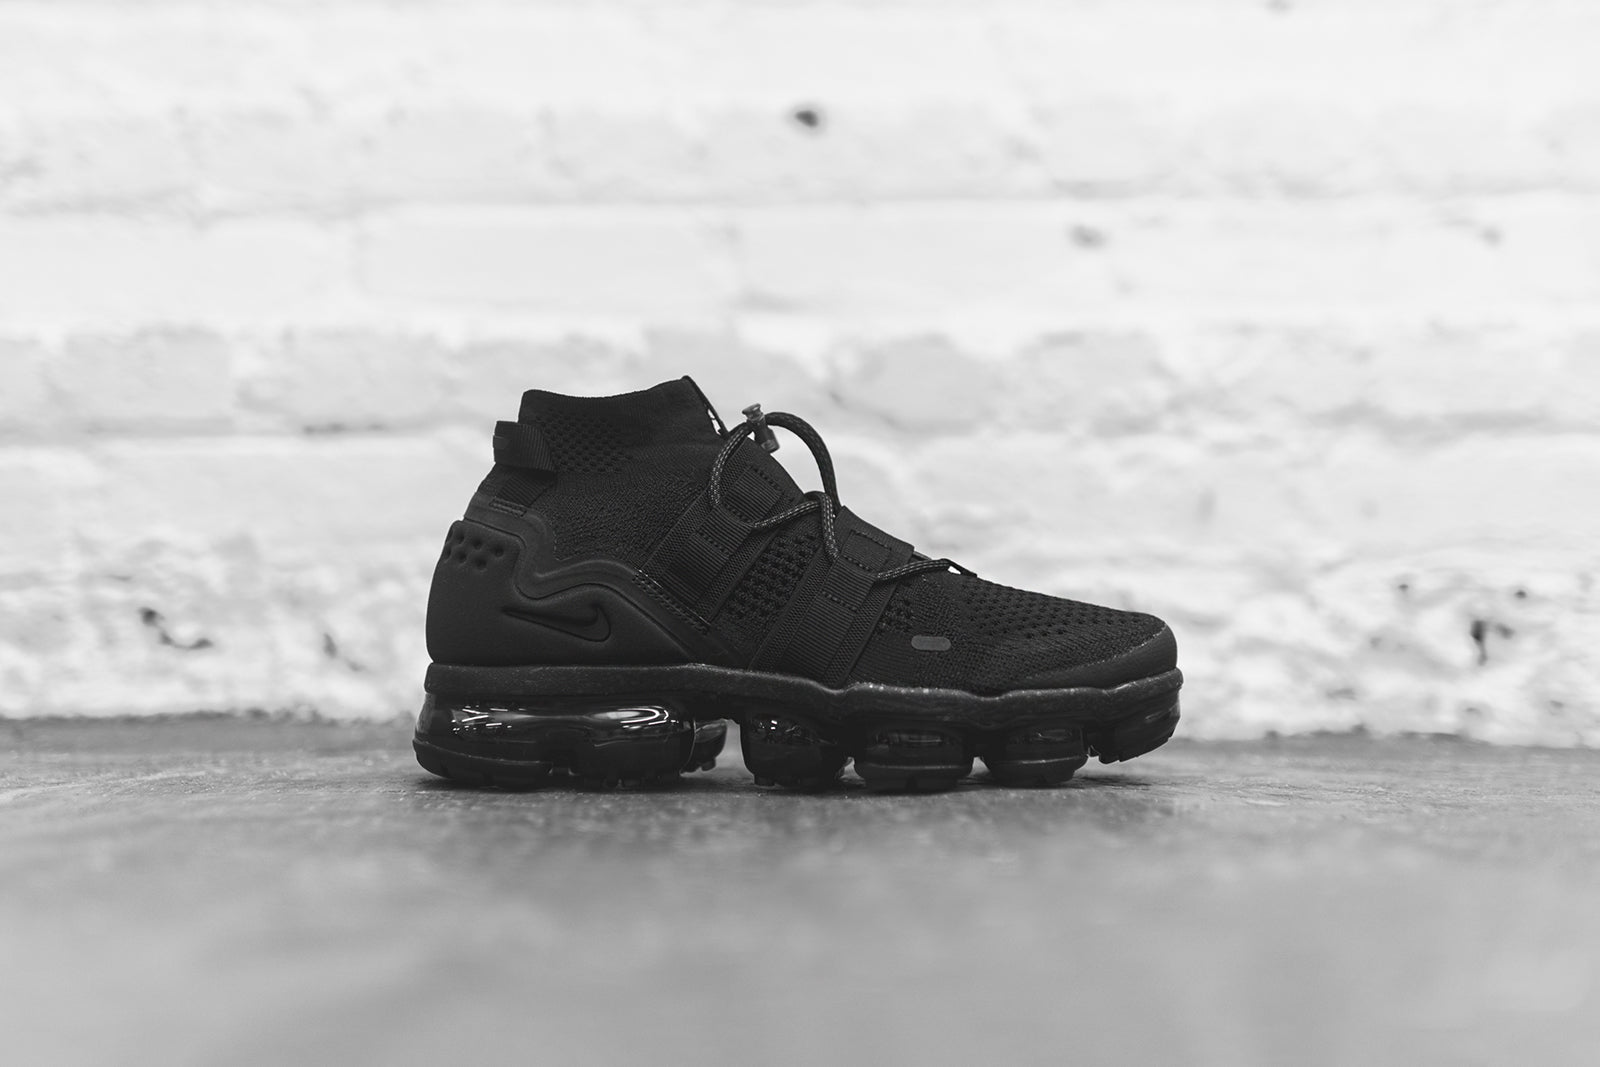 dca26684054 Nike Air VaporMax FK Utility - Triple Black. January 04